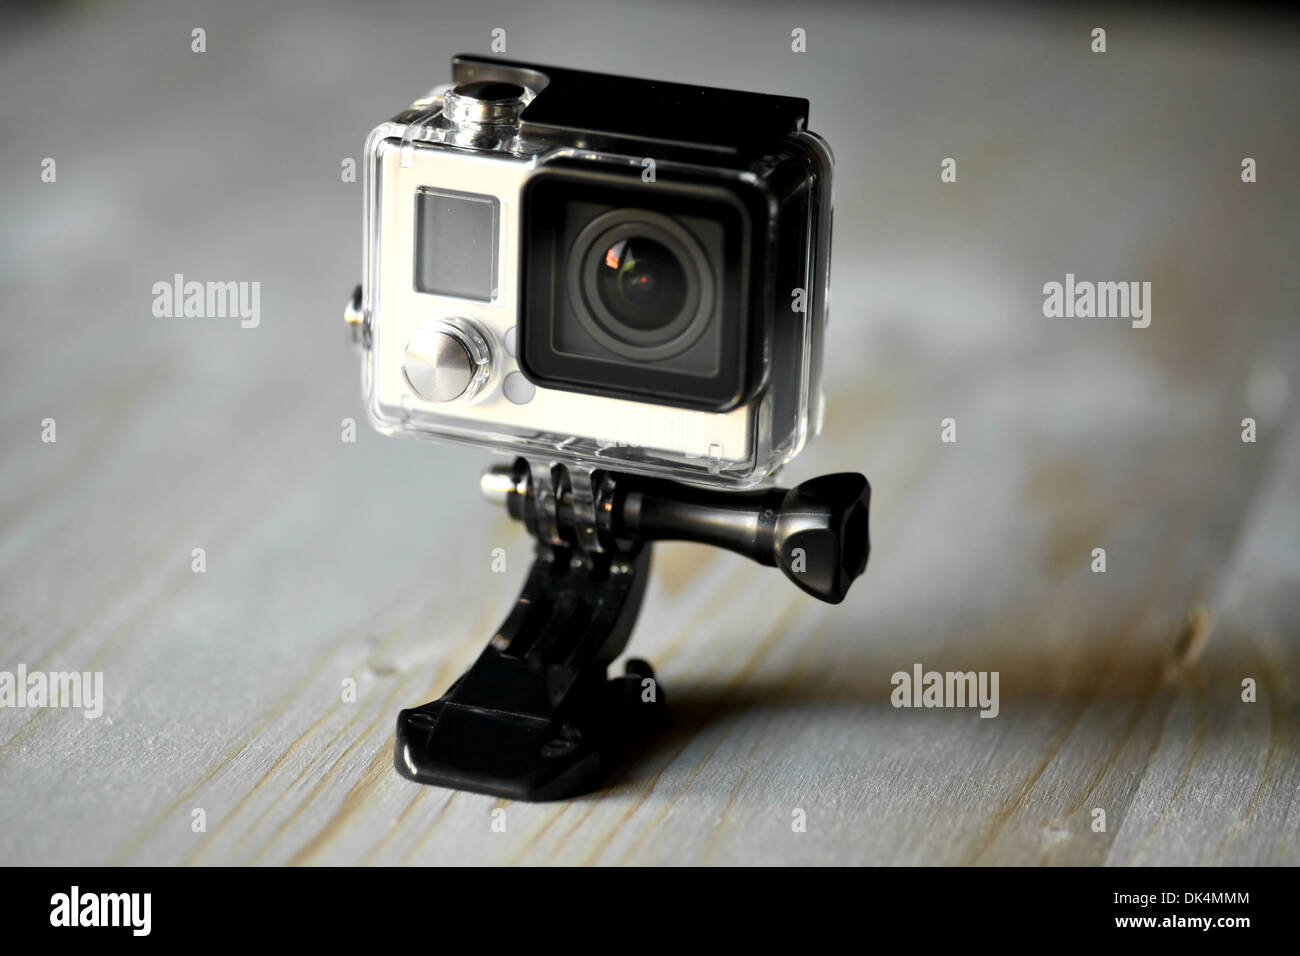 Close up color shot of a small action camera - Stock Image